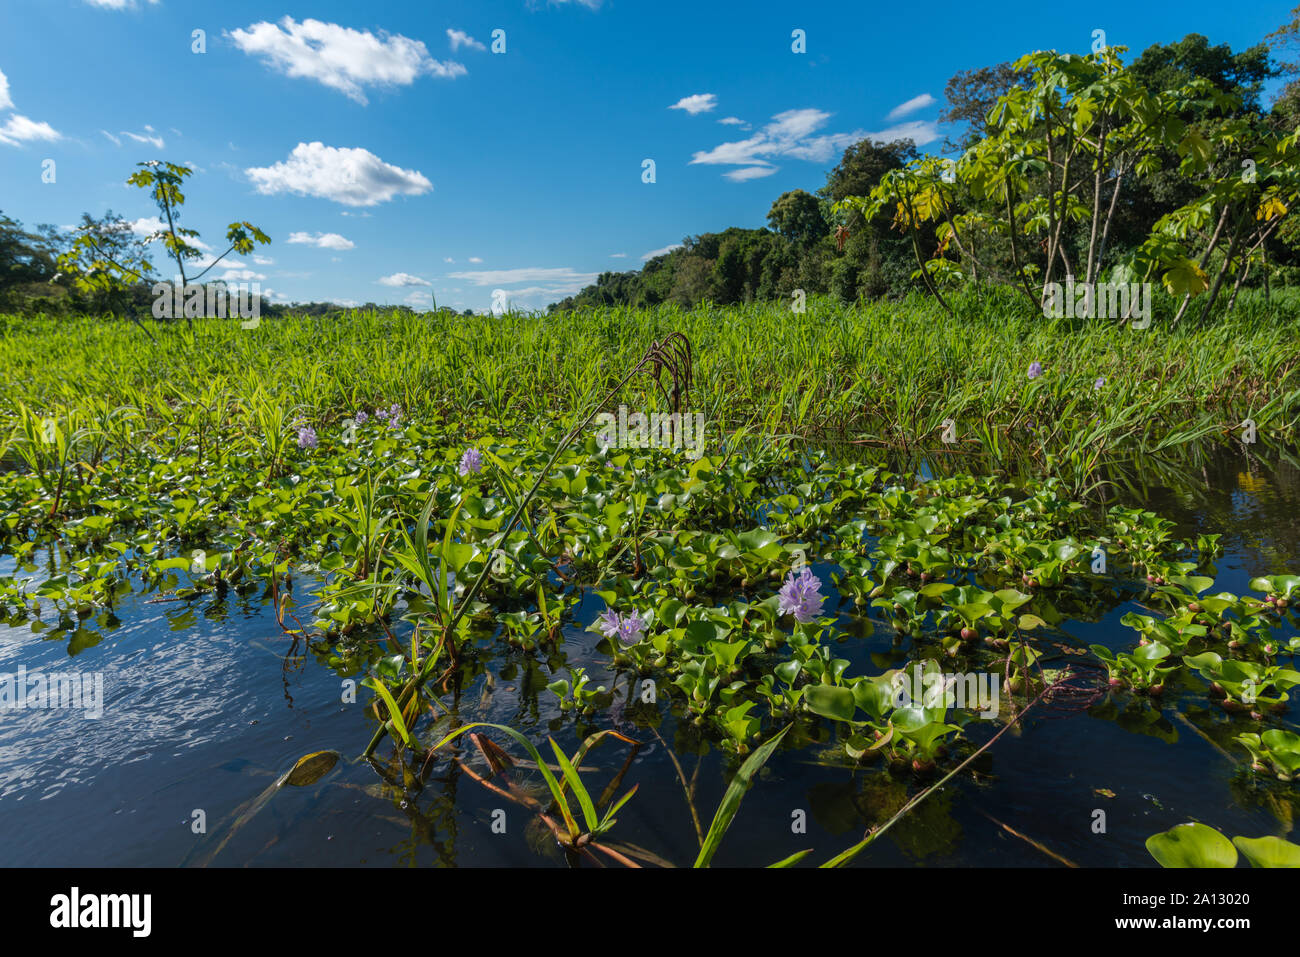 Brazilian rainforest at end of rainy season in  May, Mamirauá Sustainable Development Reserve, Rio Japurá,Tefé, state of Amazon, Brazil, Latin America Stock Photo